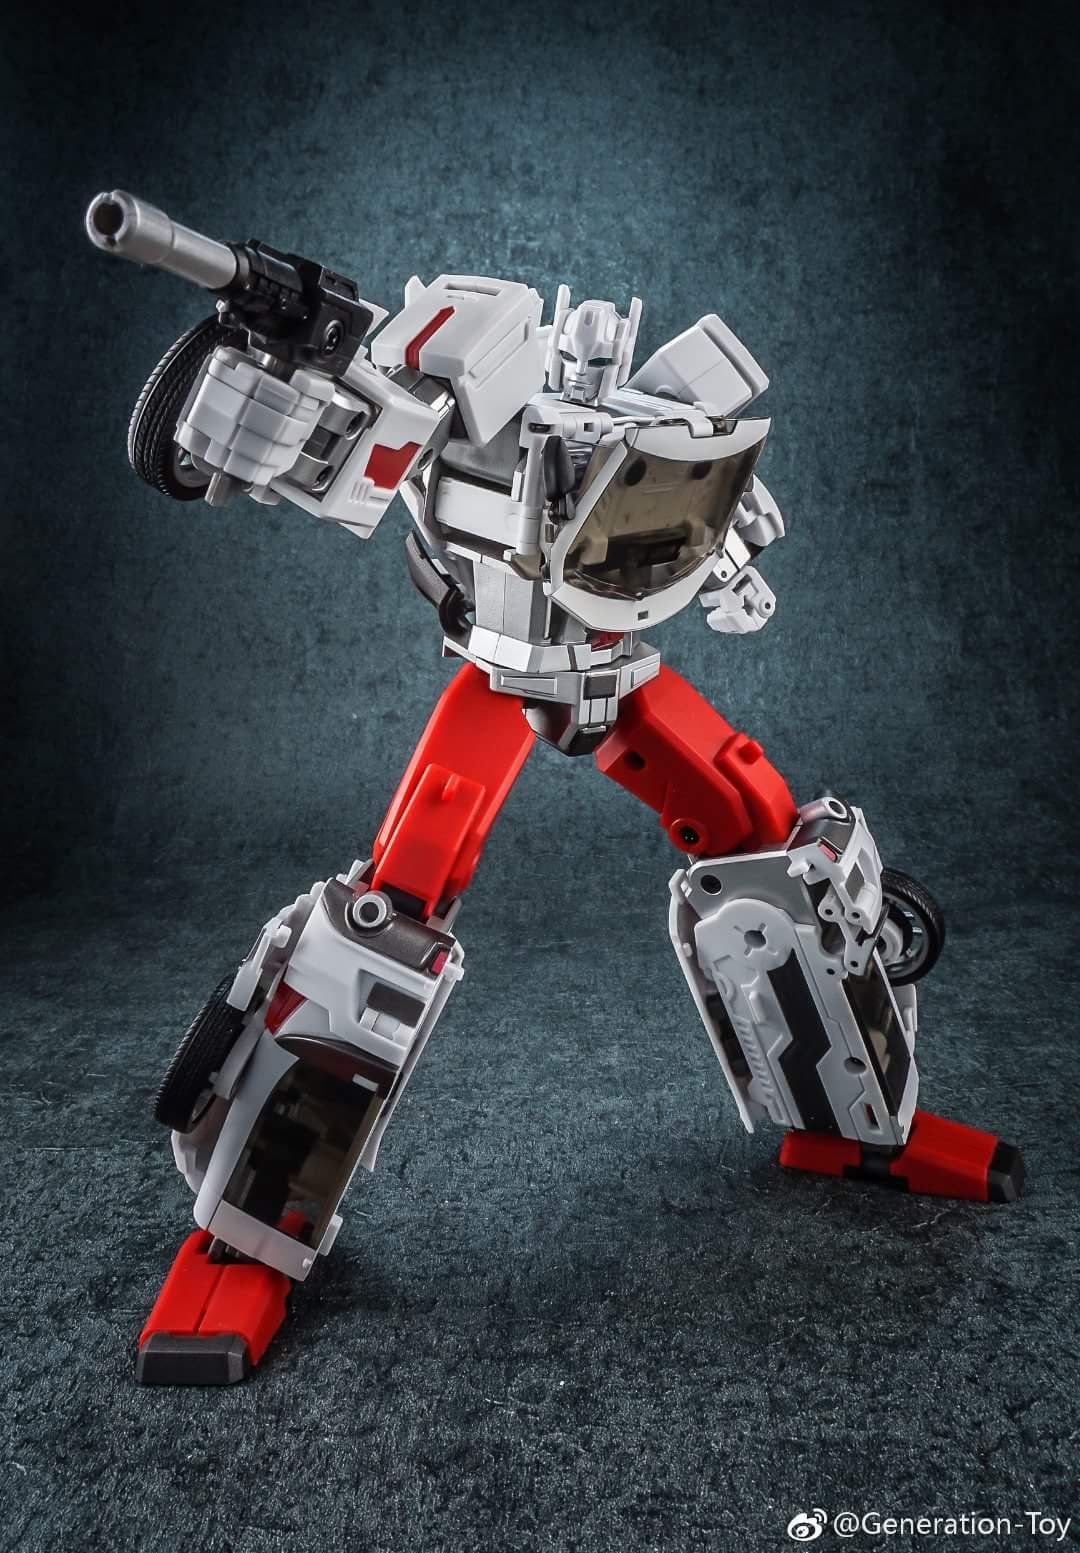 [Generation Toy] Produit Tiers - Jouet GT-08 Guardian - aka Defensor/Defenso PS0wqyCD_o